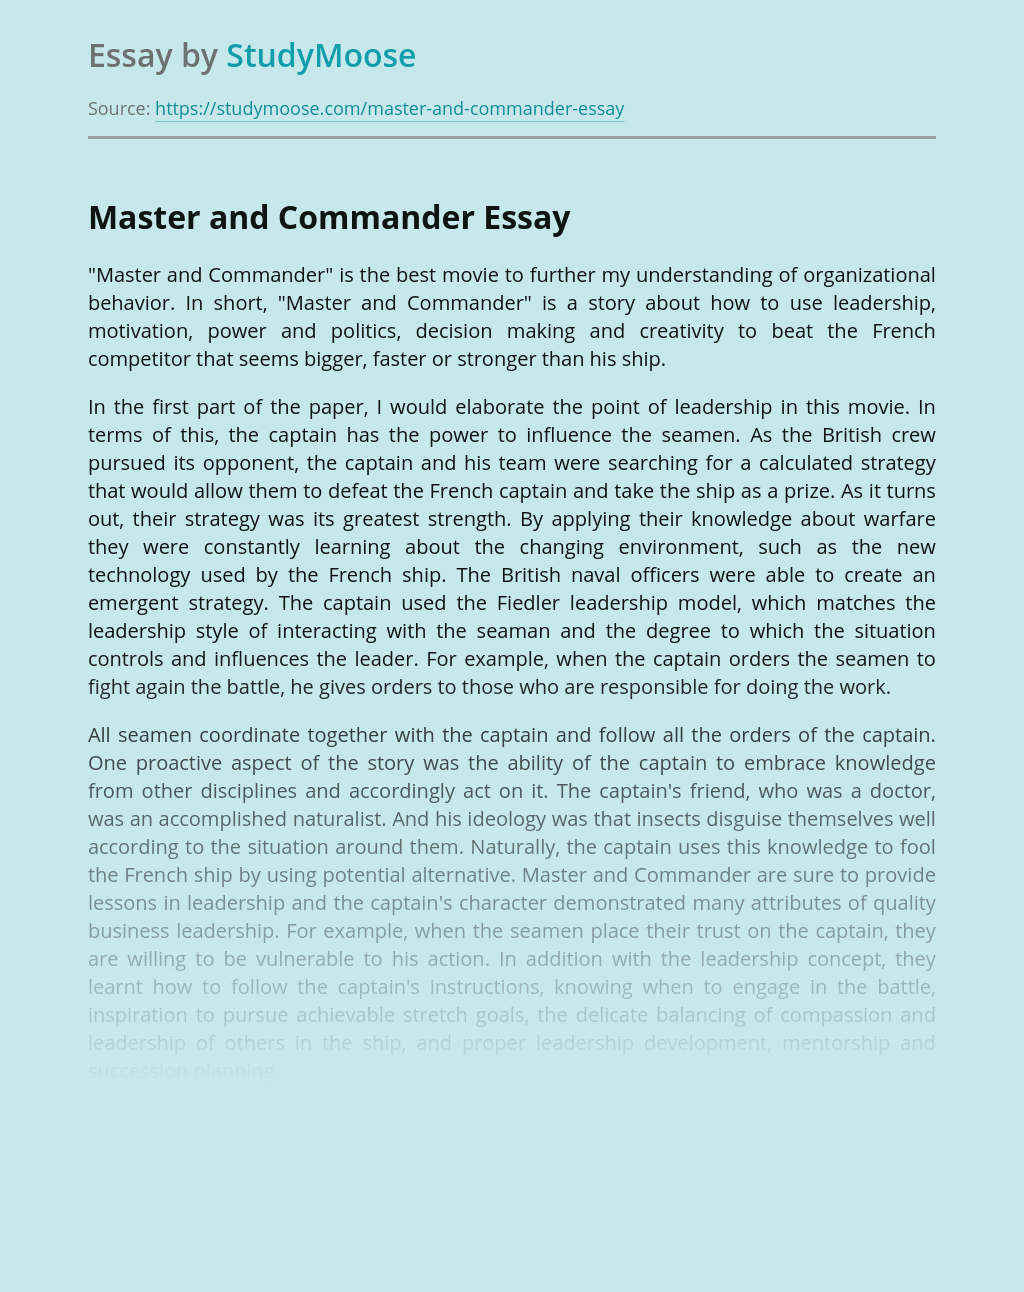 """Master and Commander"" about organizational behavior"